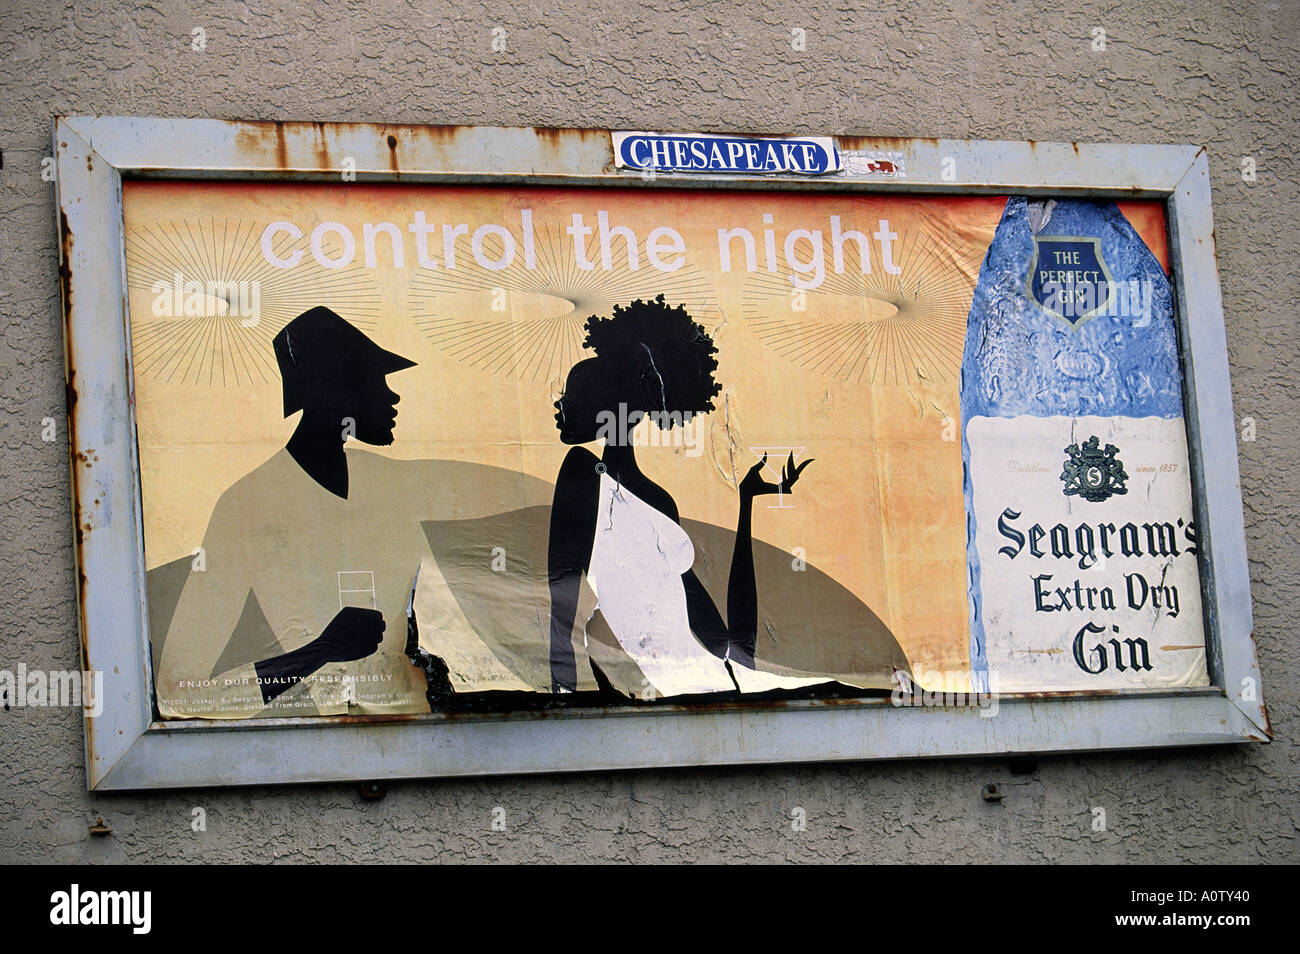 Targeted advertising for alcohol in an African American neighborhood - Stock Image